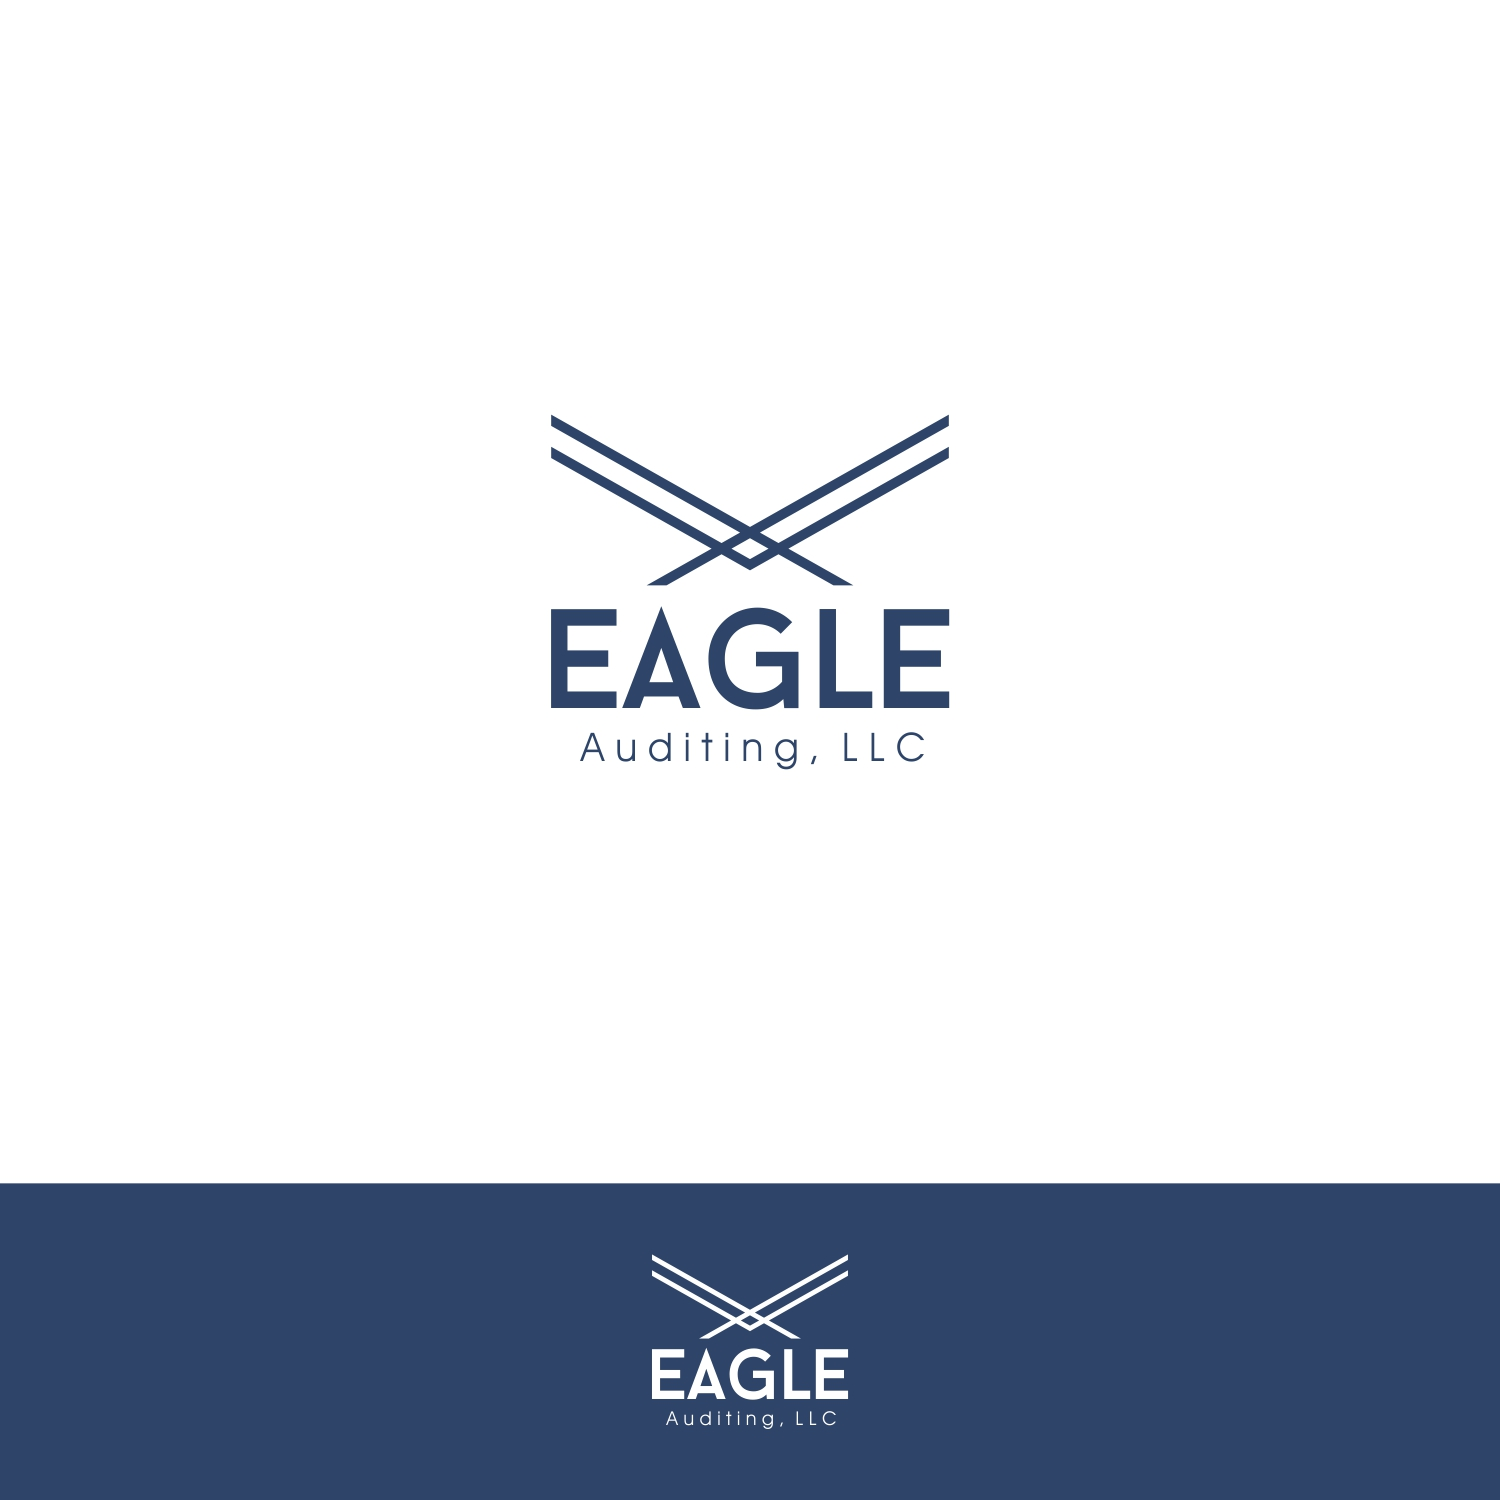 serious modern auditing logo design for eagle auditing